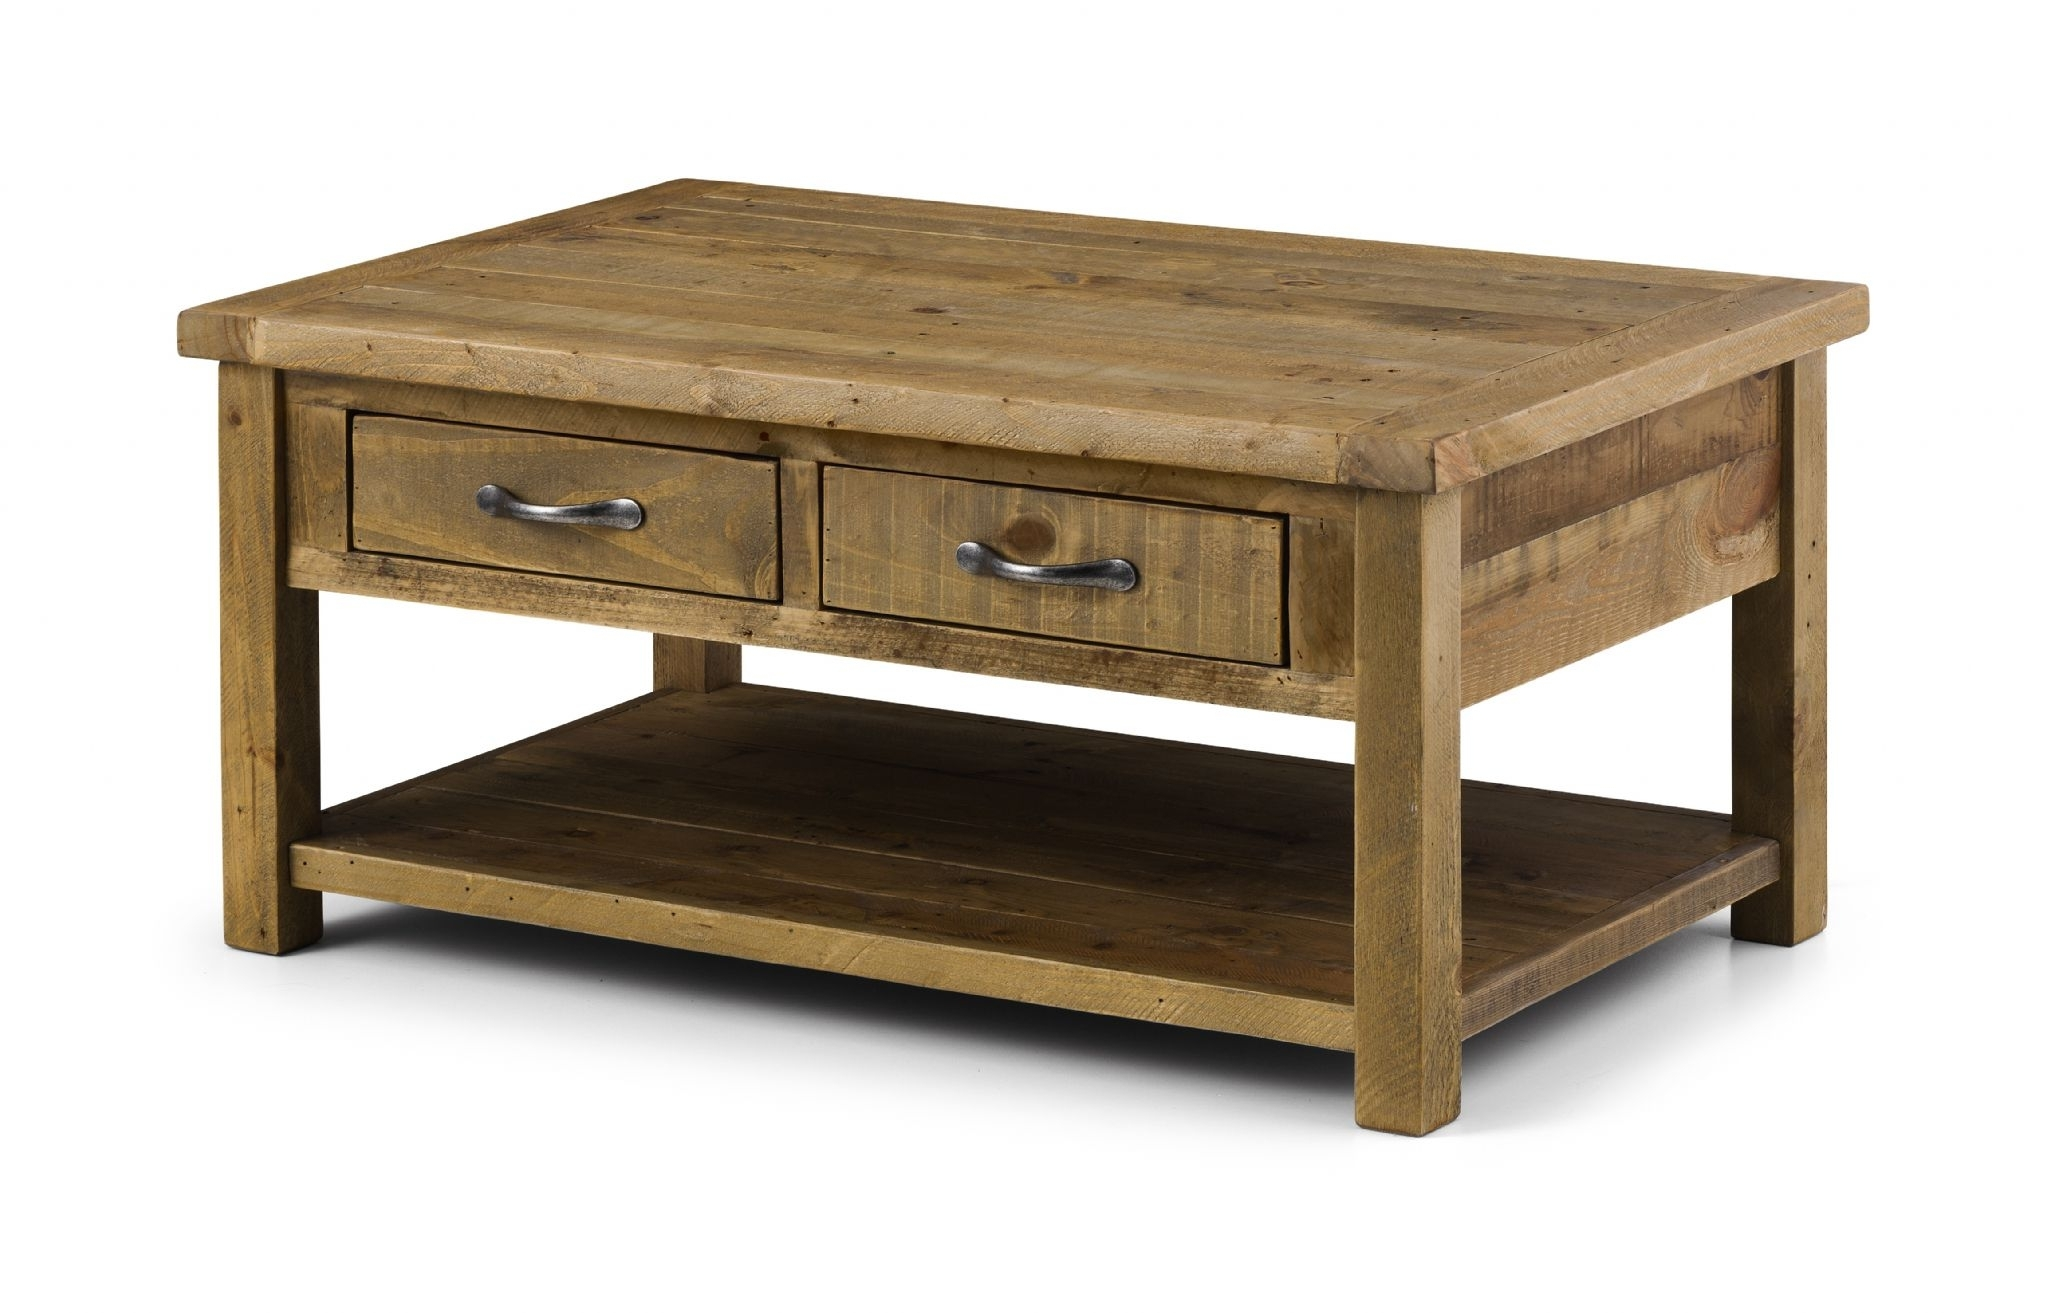 Cordoba Solid Reclaimed Pine Coffee Table With 2 Drawers Jb36 Throughout Current Reclaimed Pine Coffee Tables (View 4 of 20)